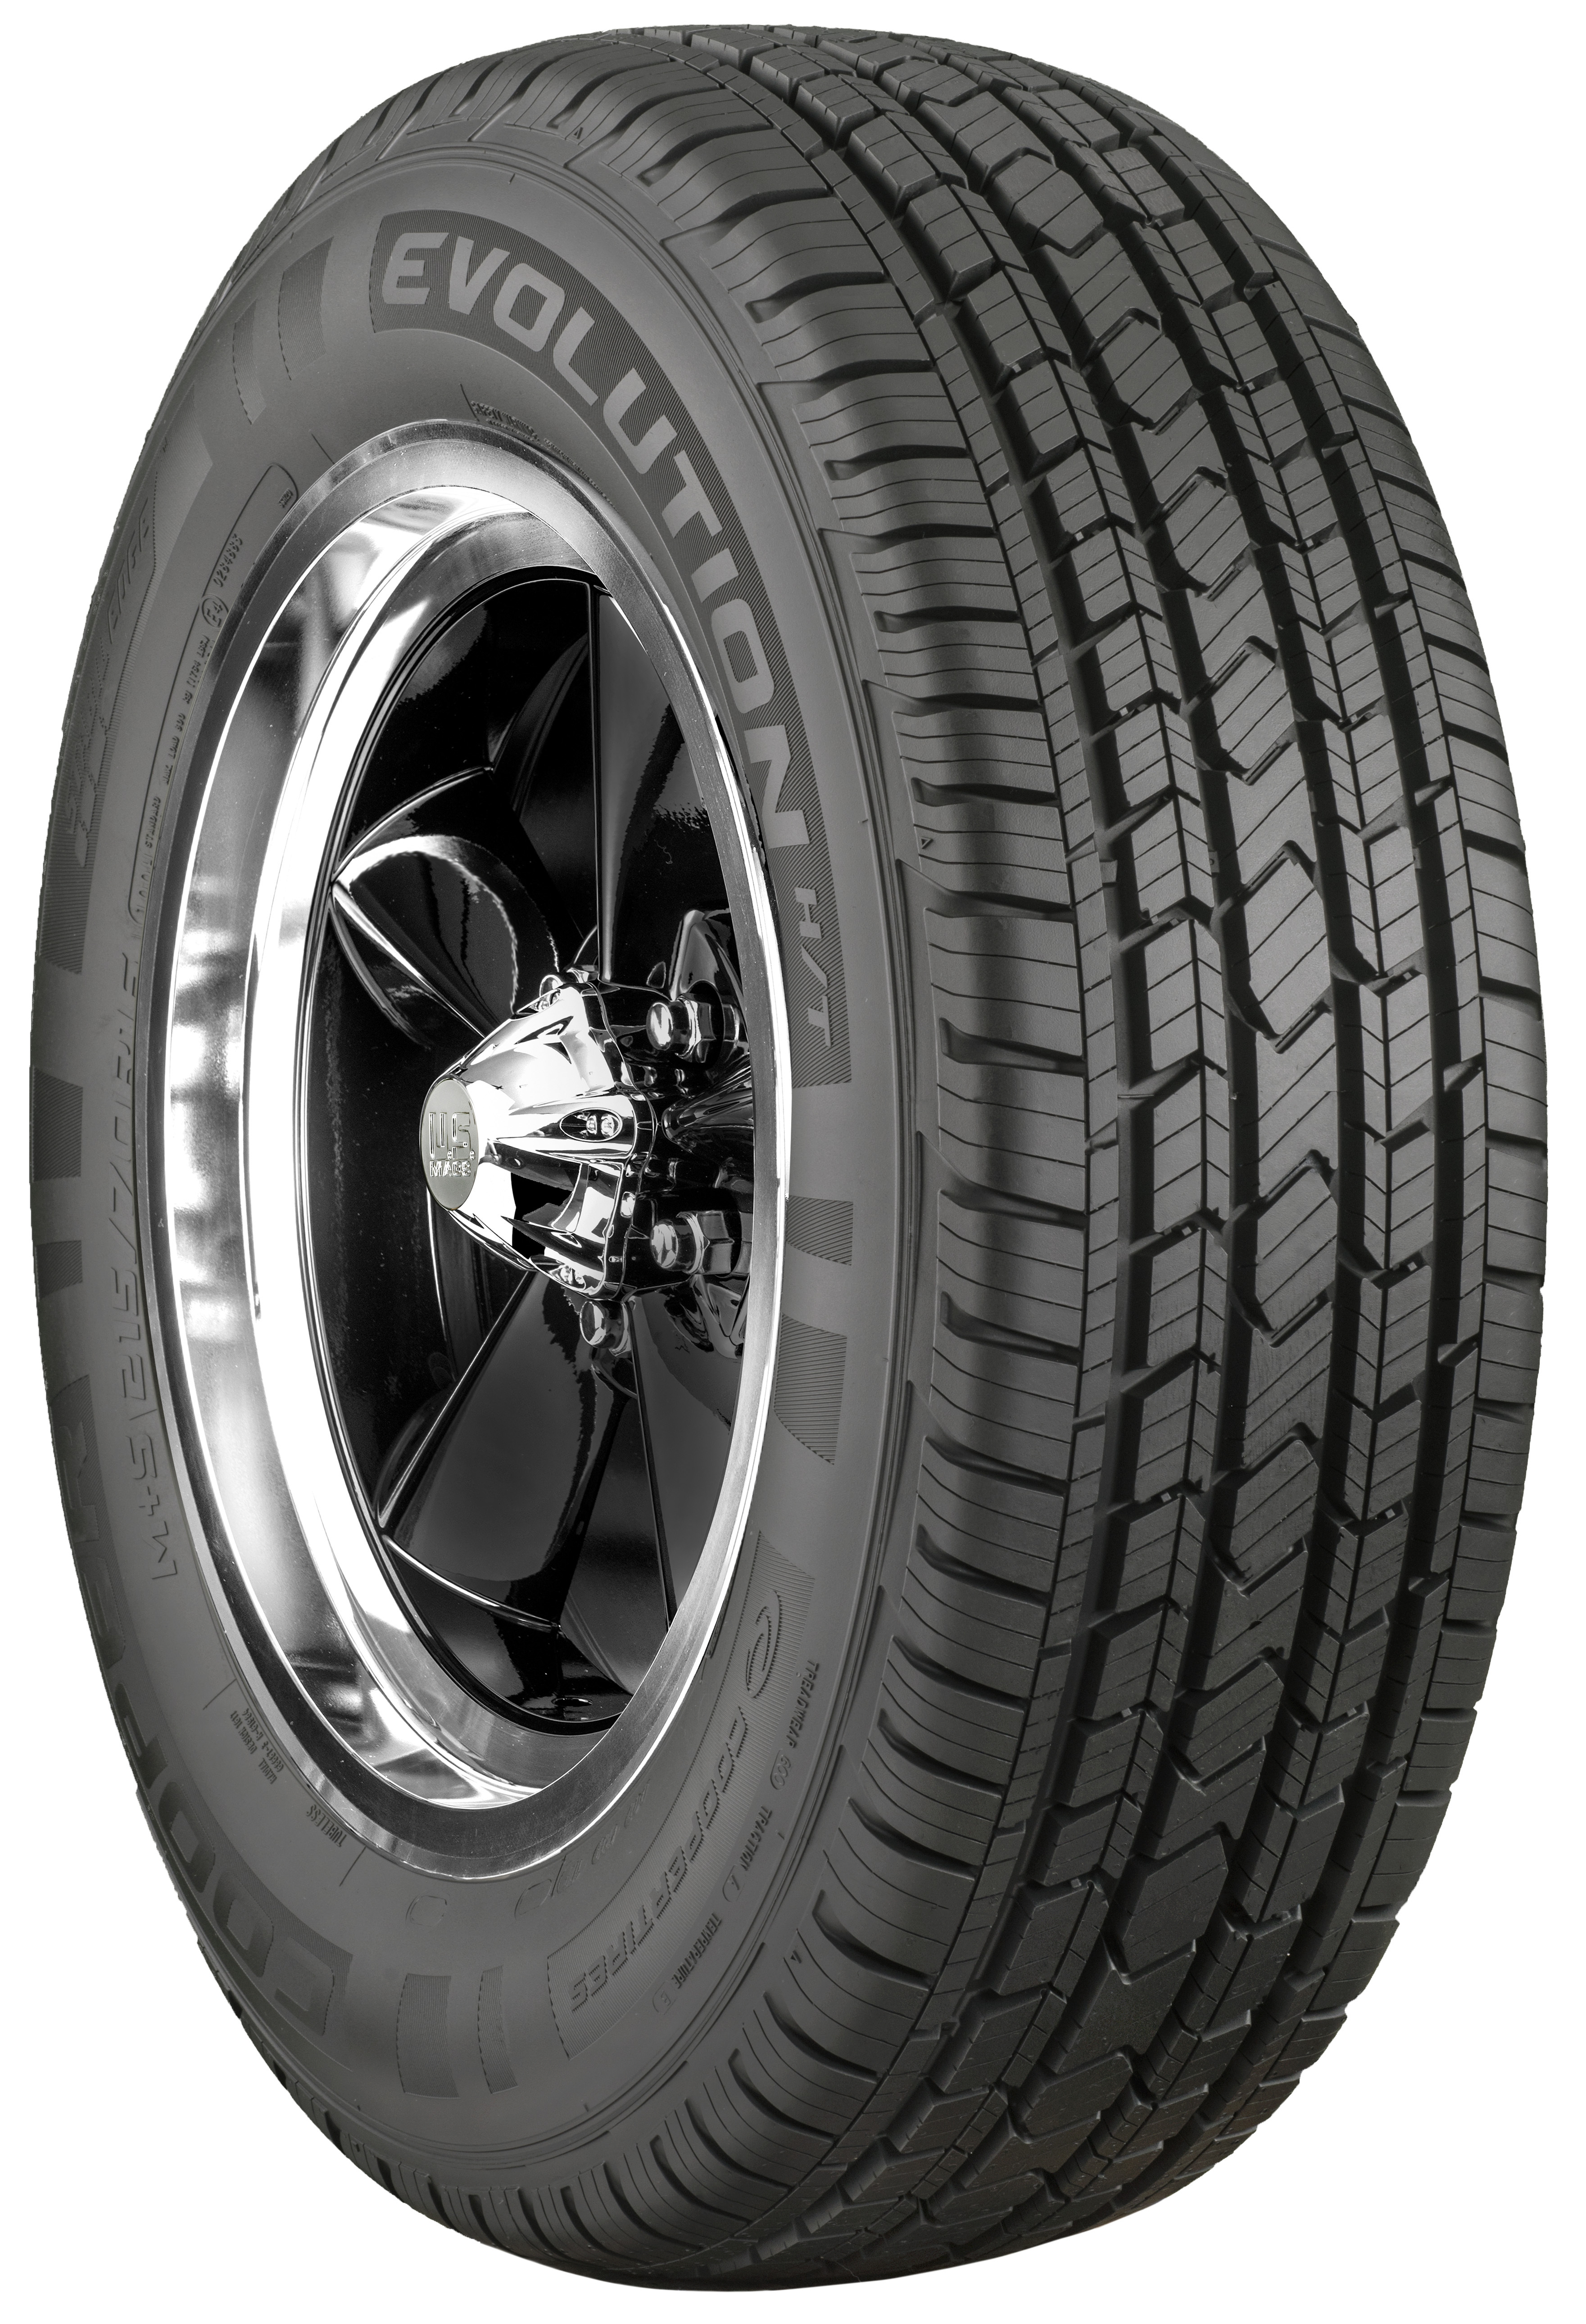 Cooper Tire\'s Evolution H/T™ Earns New Product Award at SEMA ...